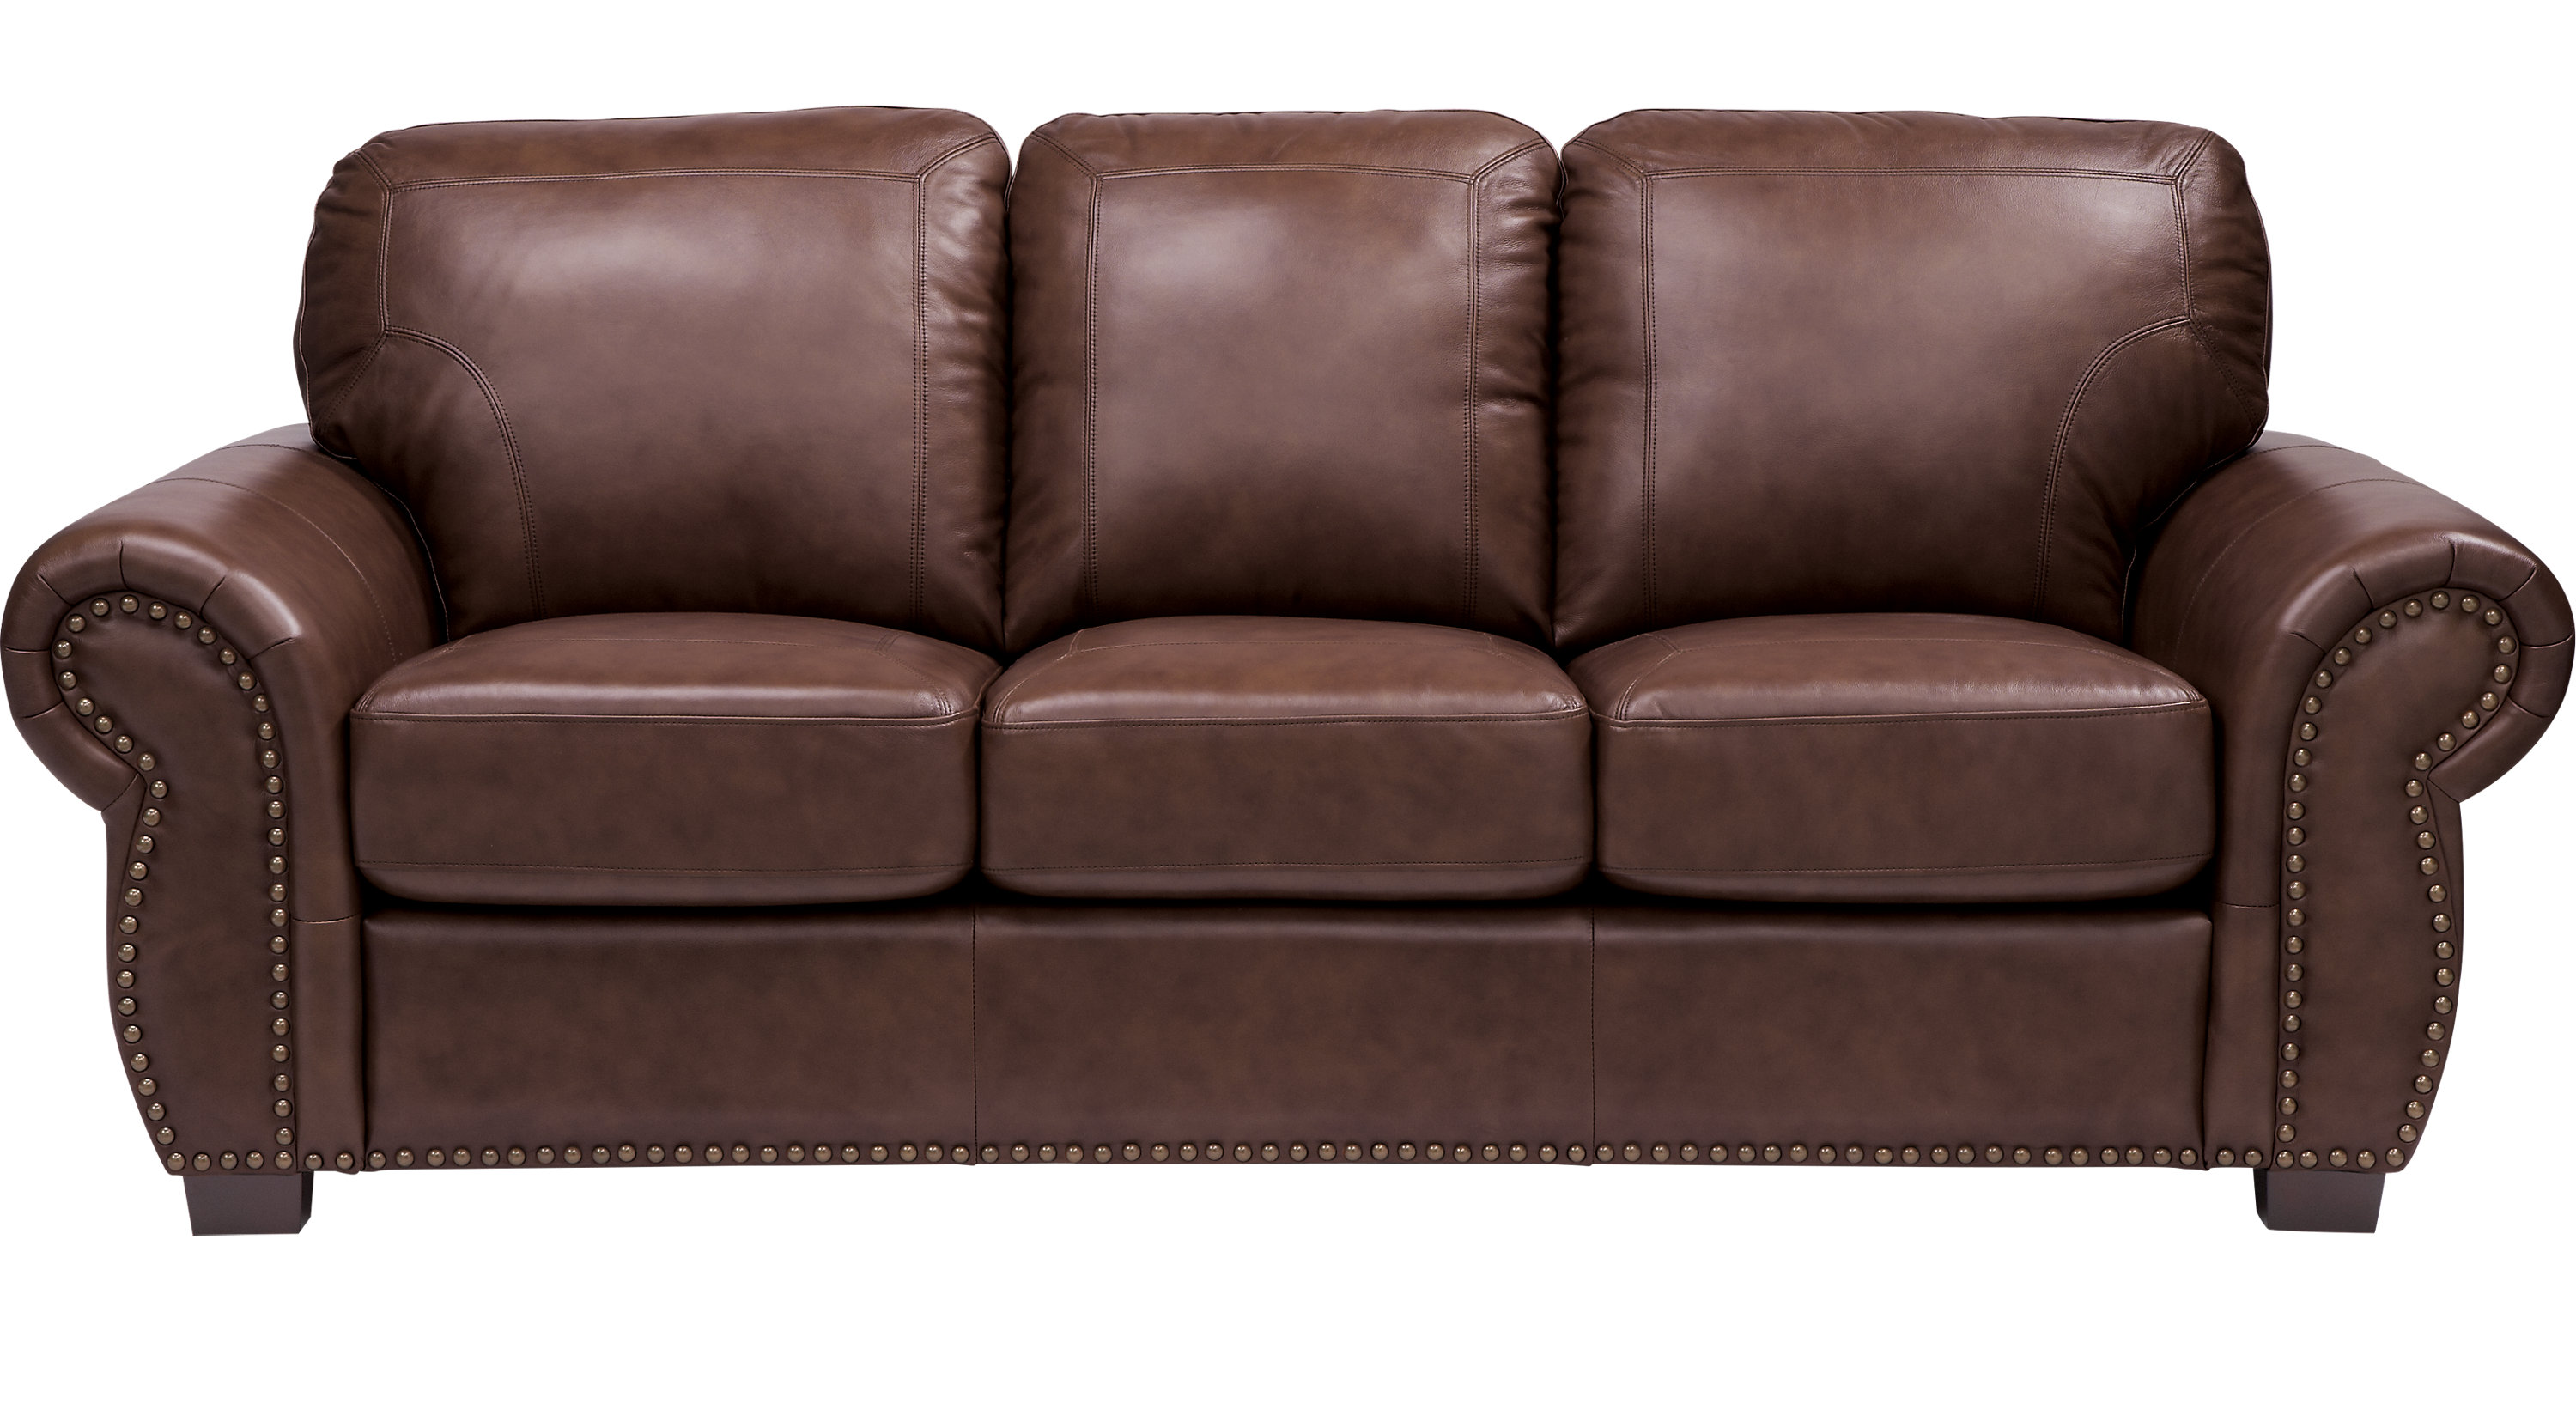 Balencia Dark Brown Leather Sofa